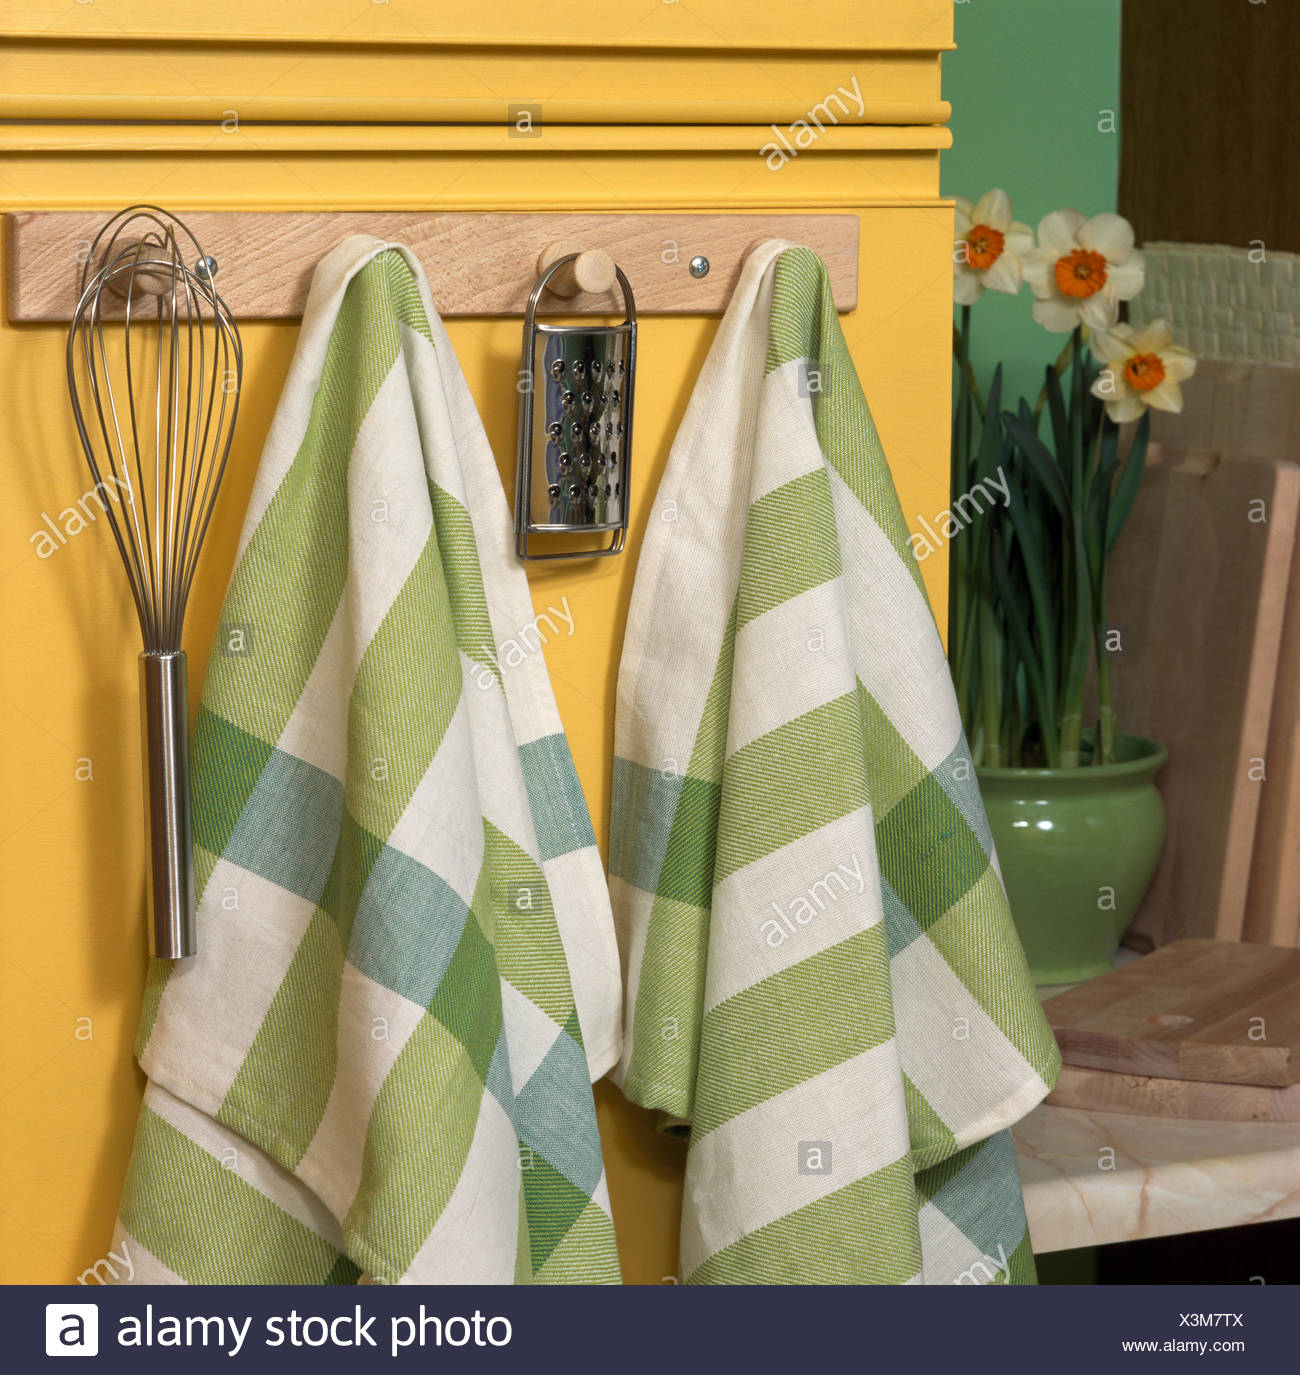 Close-up of green checked tea towels on a peg board with kitchen utensils - Stock Image